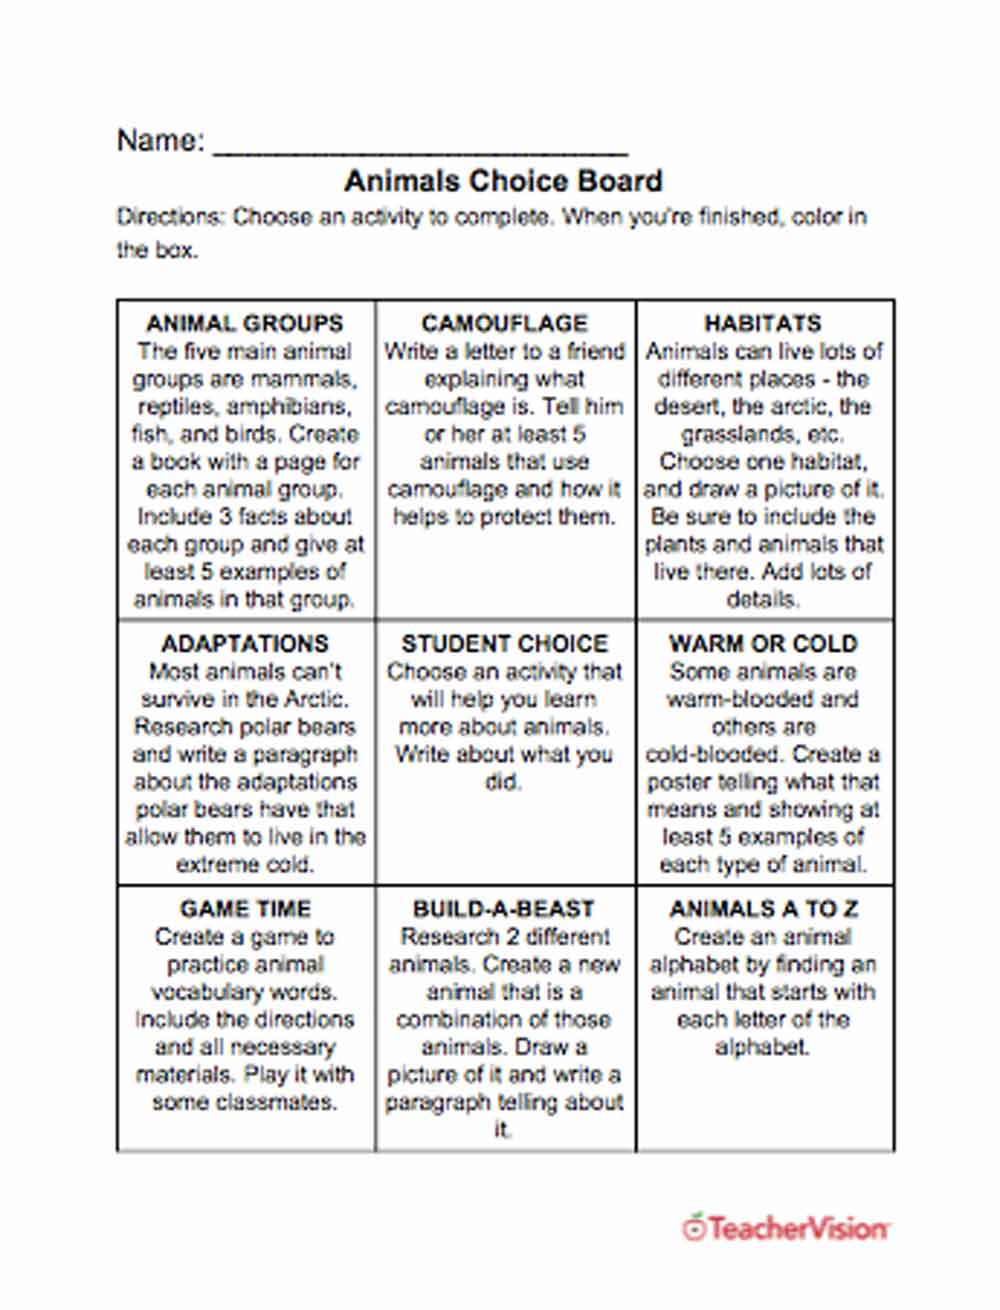 Animals Printables, Lessons, And Activities: Grades K-12 - Teachervision | Free Printable Worksheets Animal Adaptations